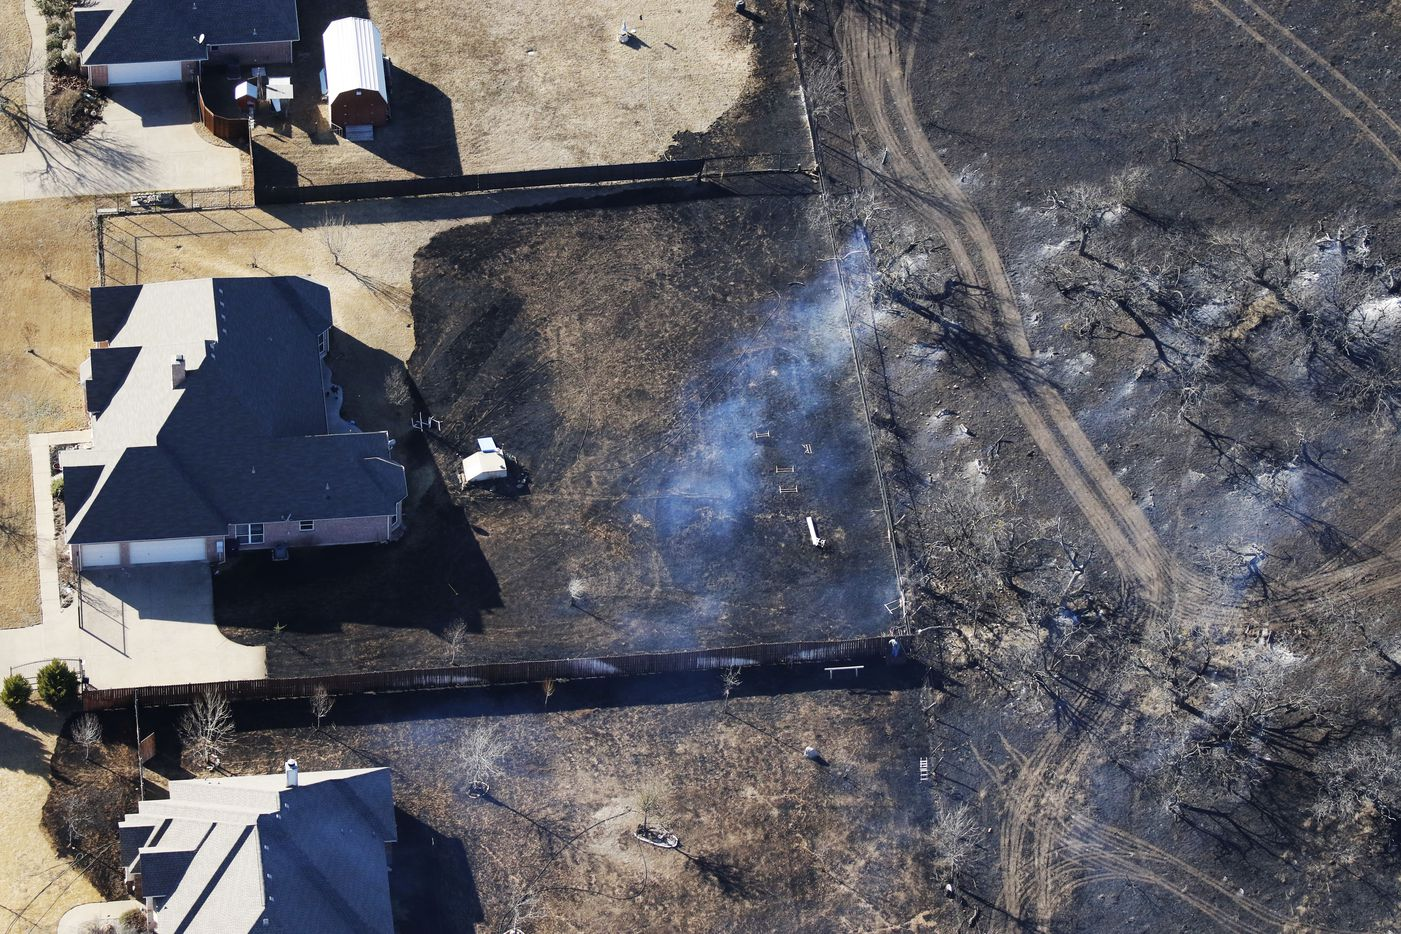 Homes were threatened by a grass fire west of Fort Worth, Texas, on Monday January 22, 2018.